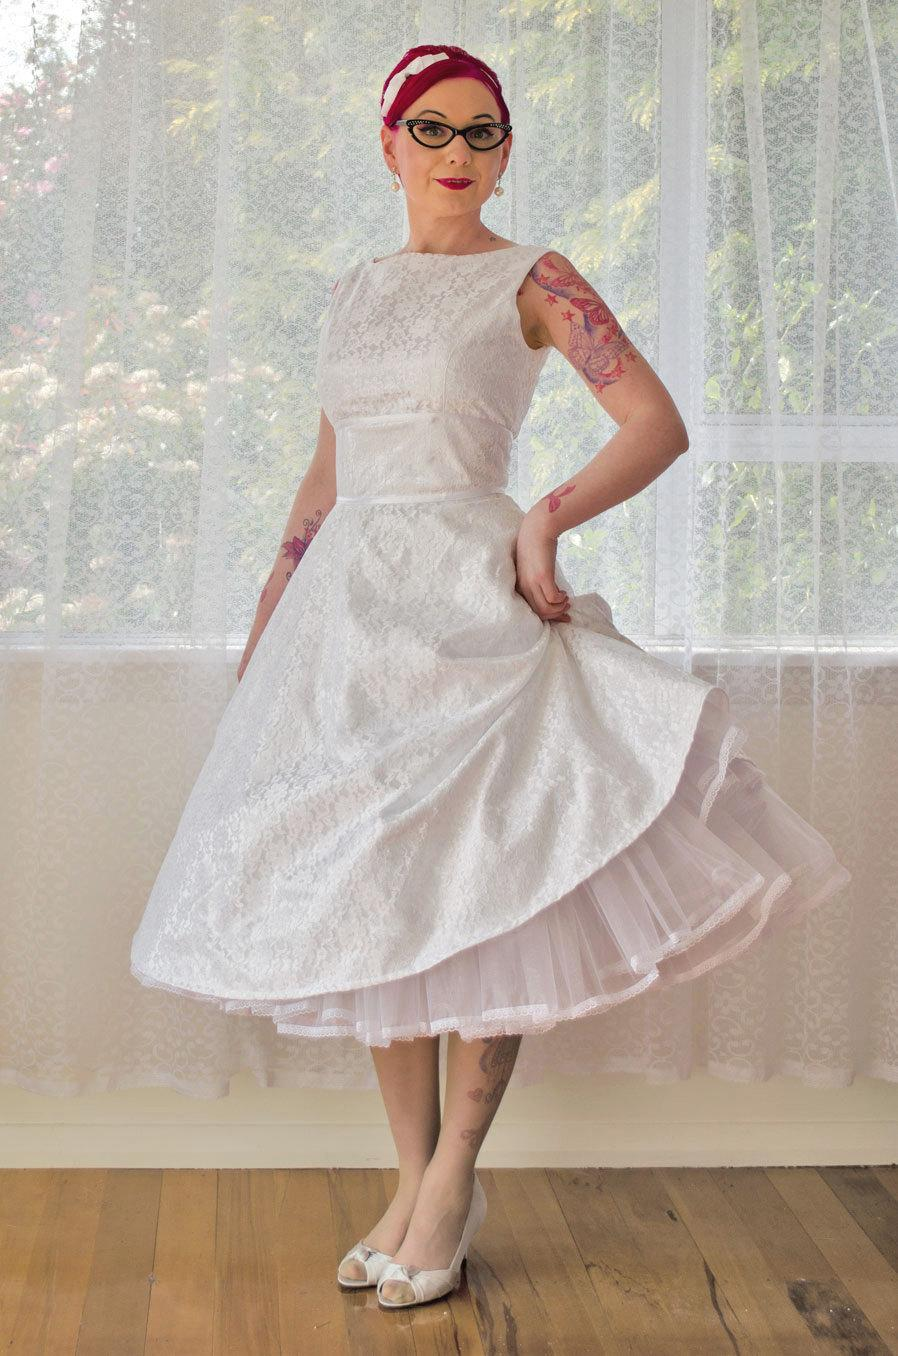 1950 S Cordelia White Wedding Dress With A Boat Neck Lace Overlay Ribbon Trim Tea Length Skirt And Petticoat Custom Made To Fit